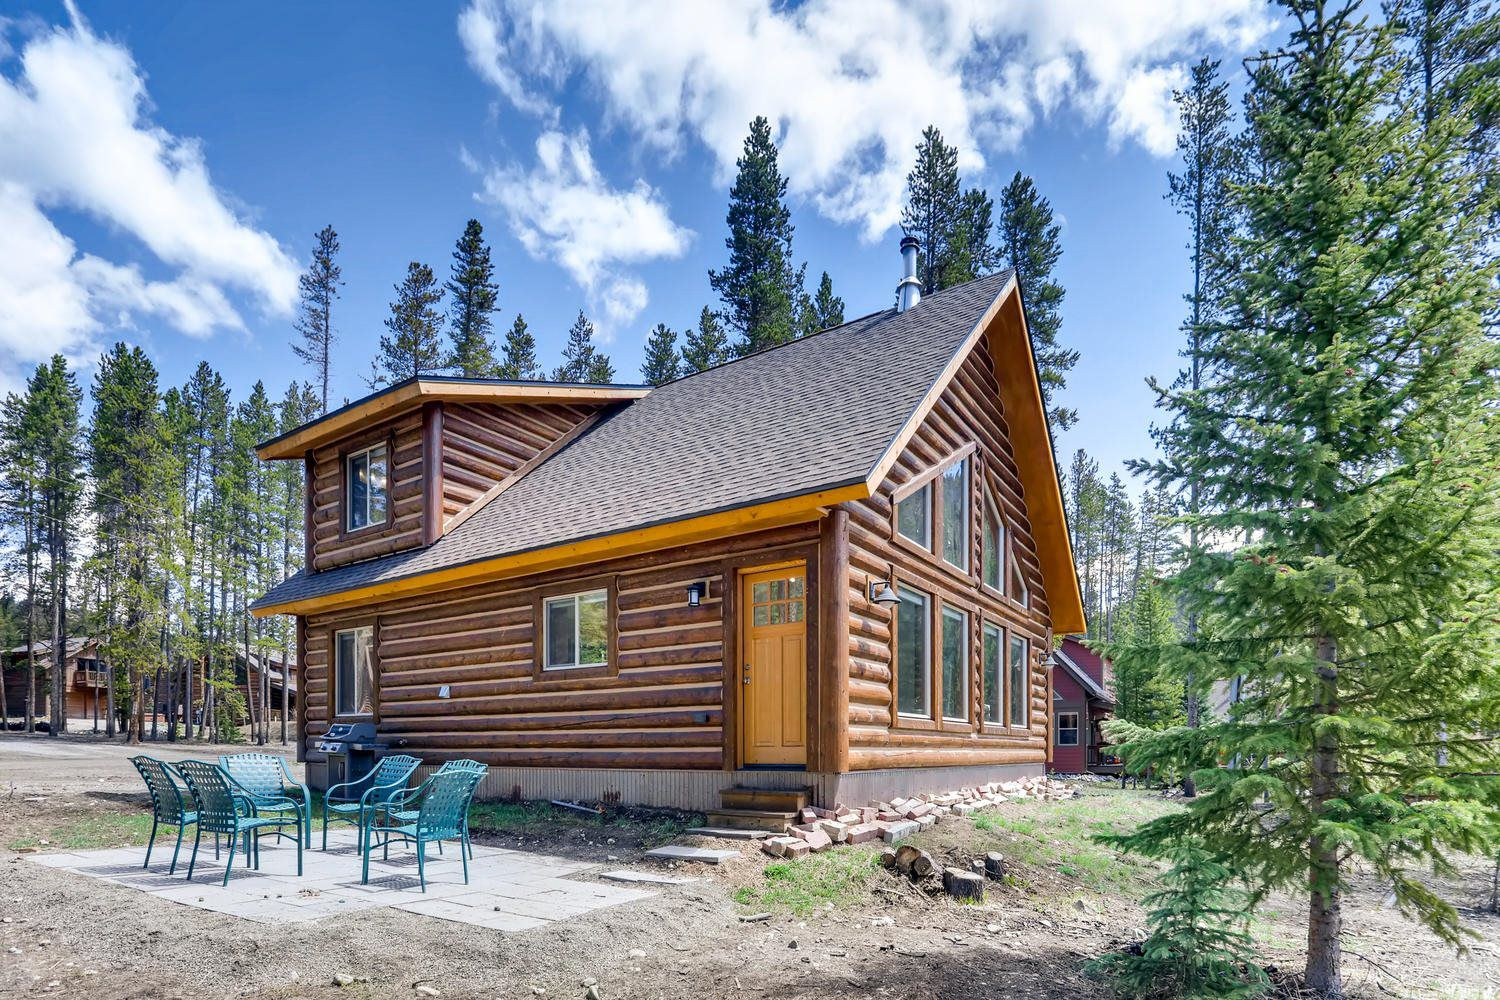 Gallery Mountain Log Homes Of Colorado Inc